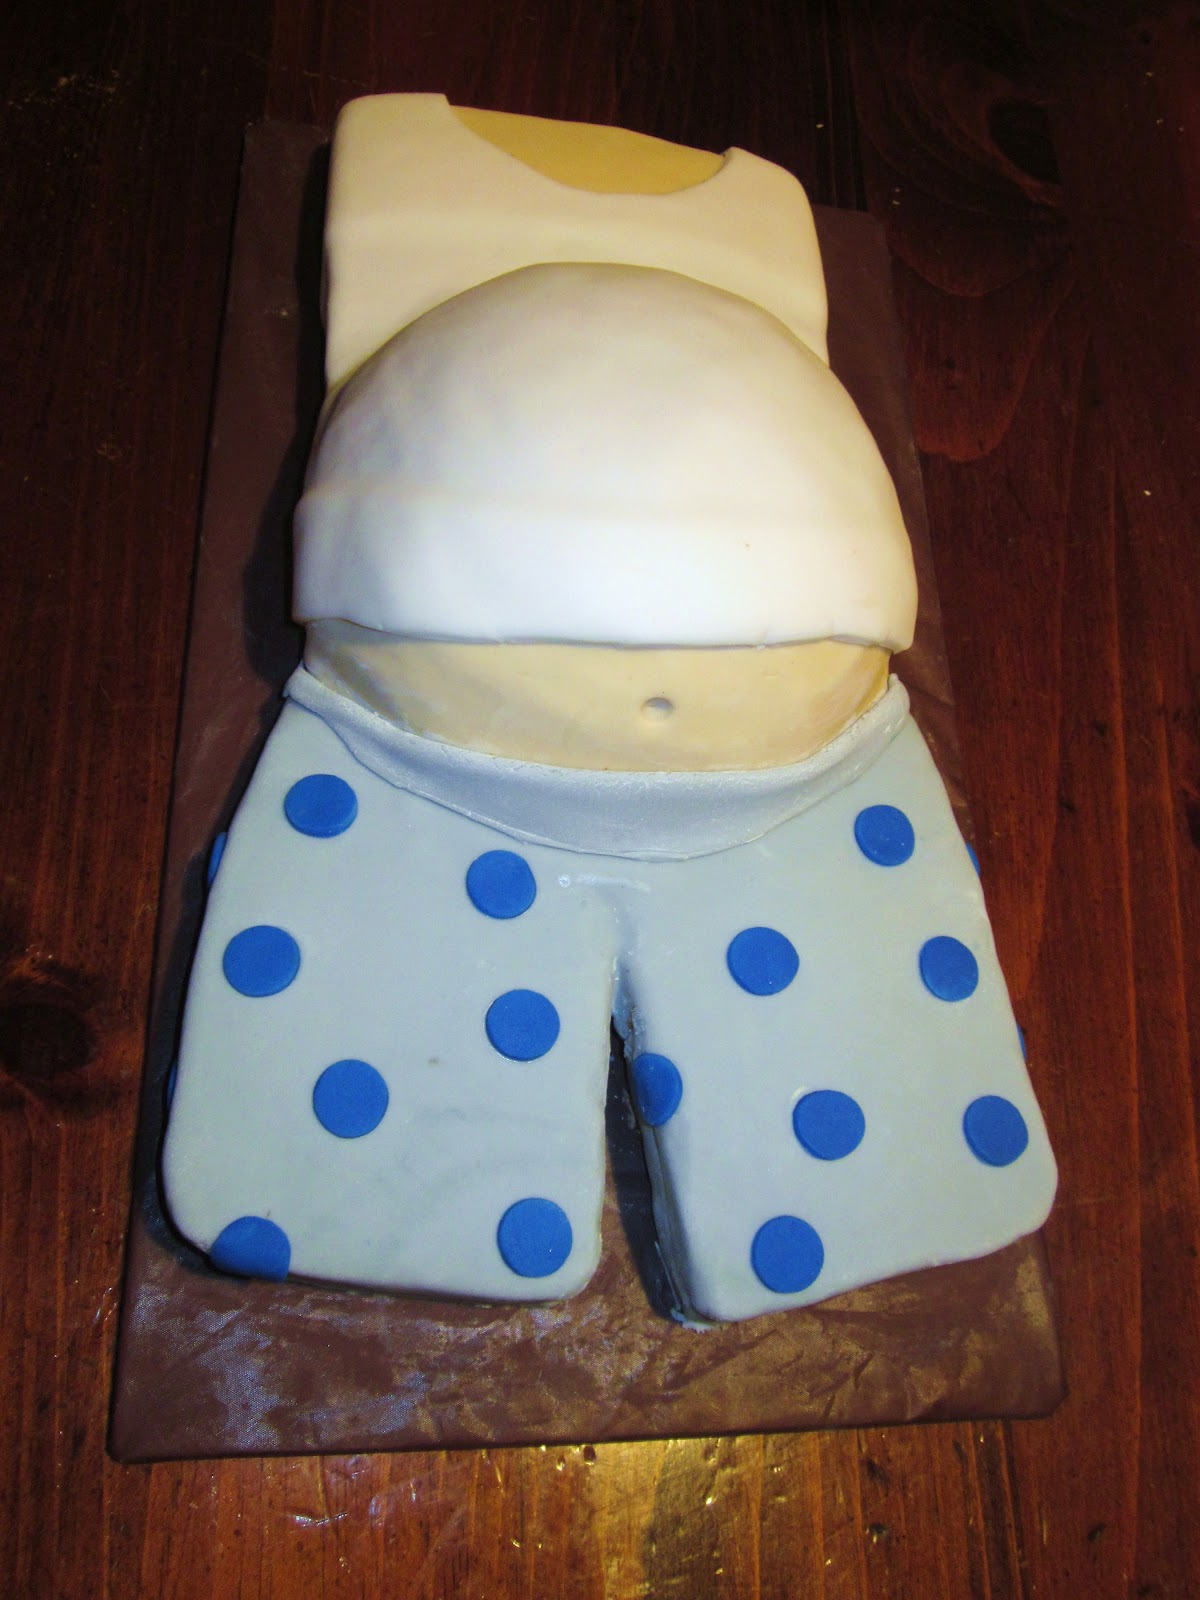 Second Generation Cake Design Beer Belly 50th Birthday Cake